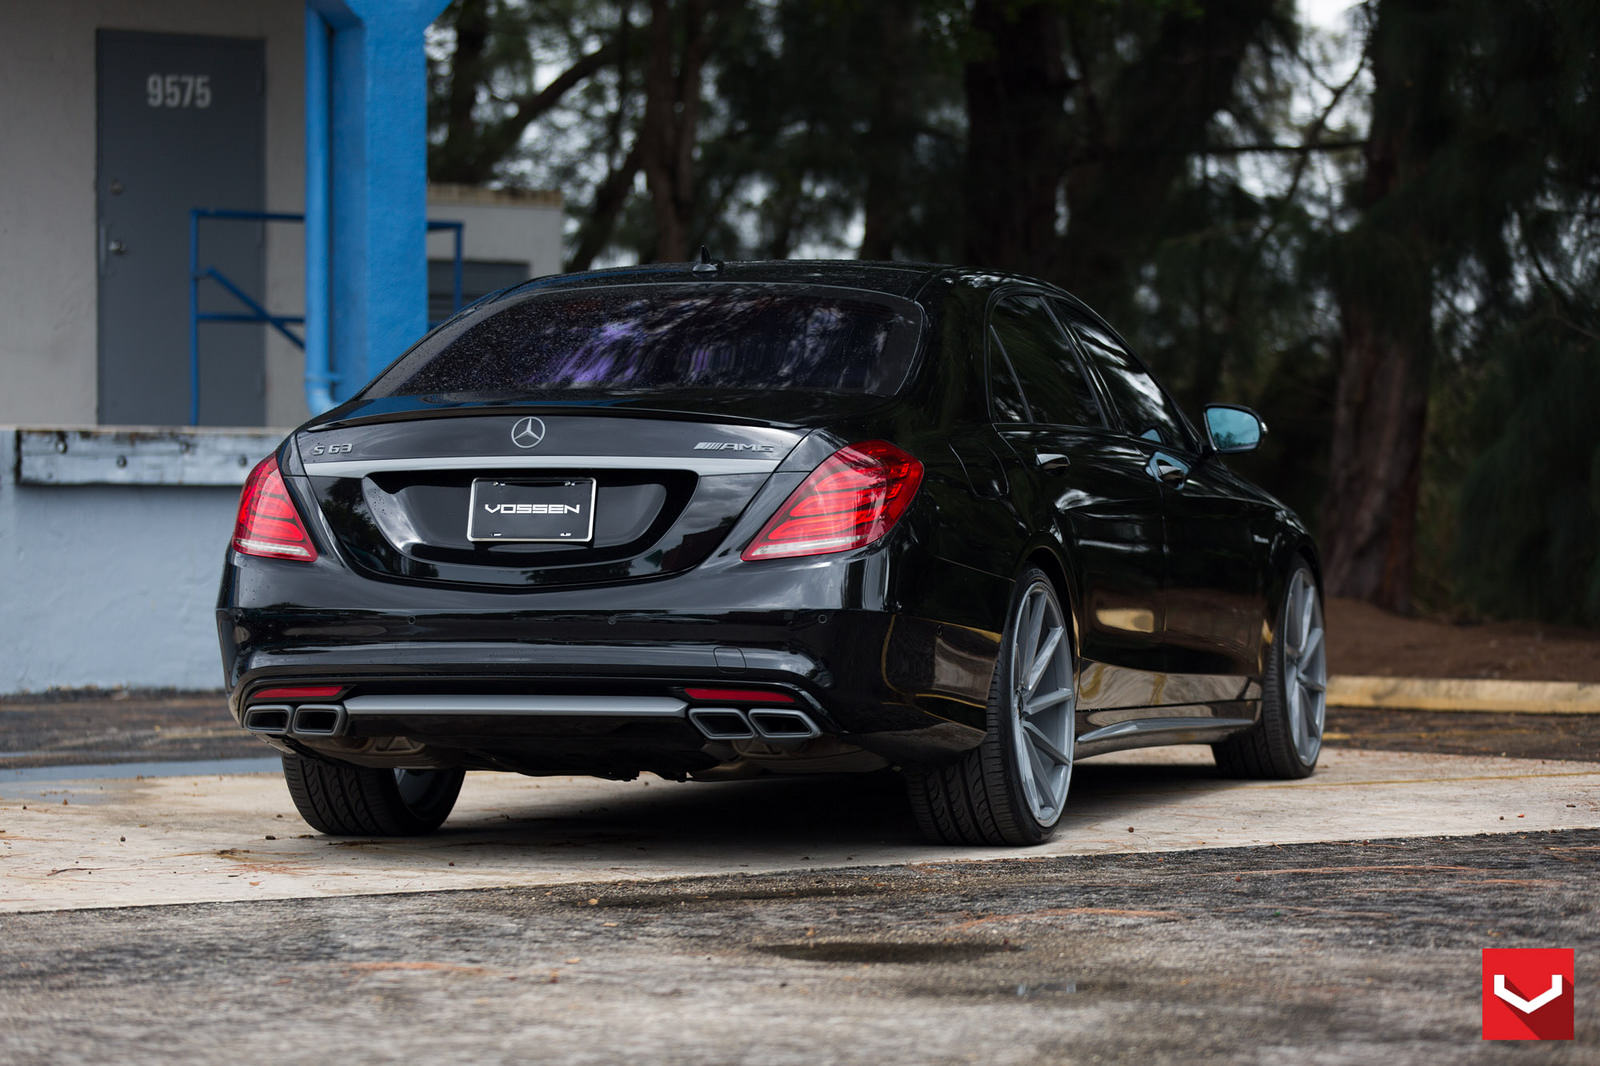 Mercedes benz w222 s63 amg on vossen cvt wheels benztuning for Mercedes benz 07